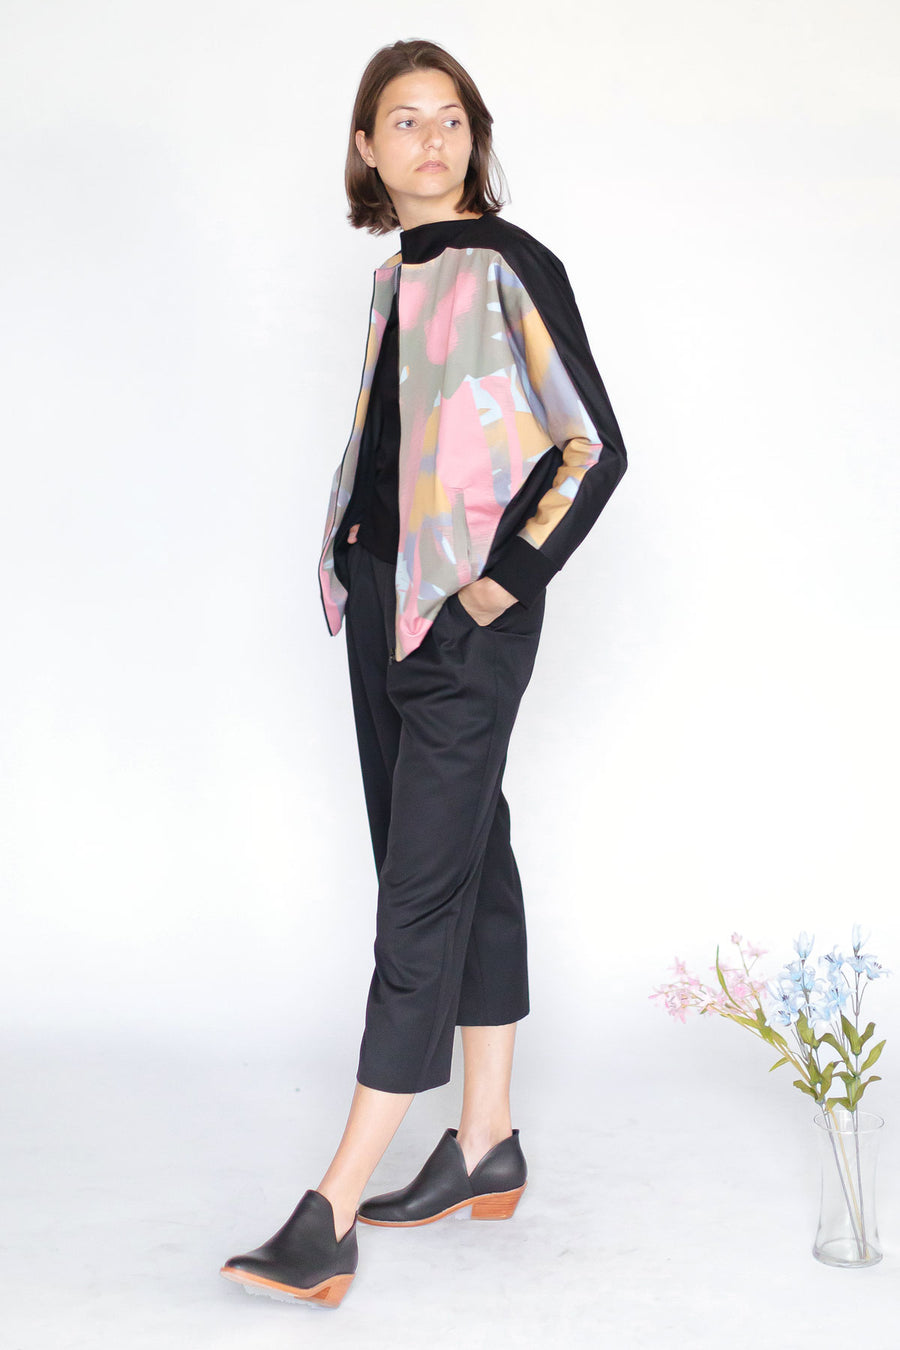 Bomber jacket with black and pink abstract print